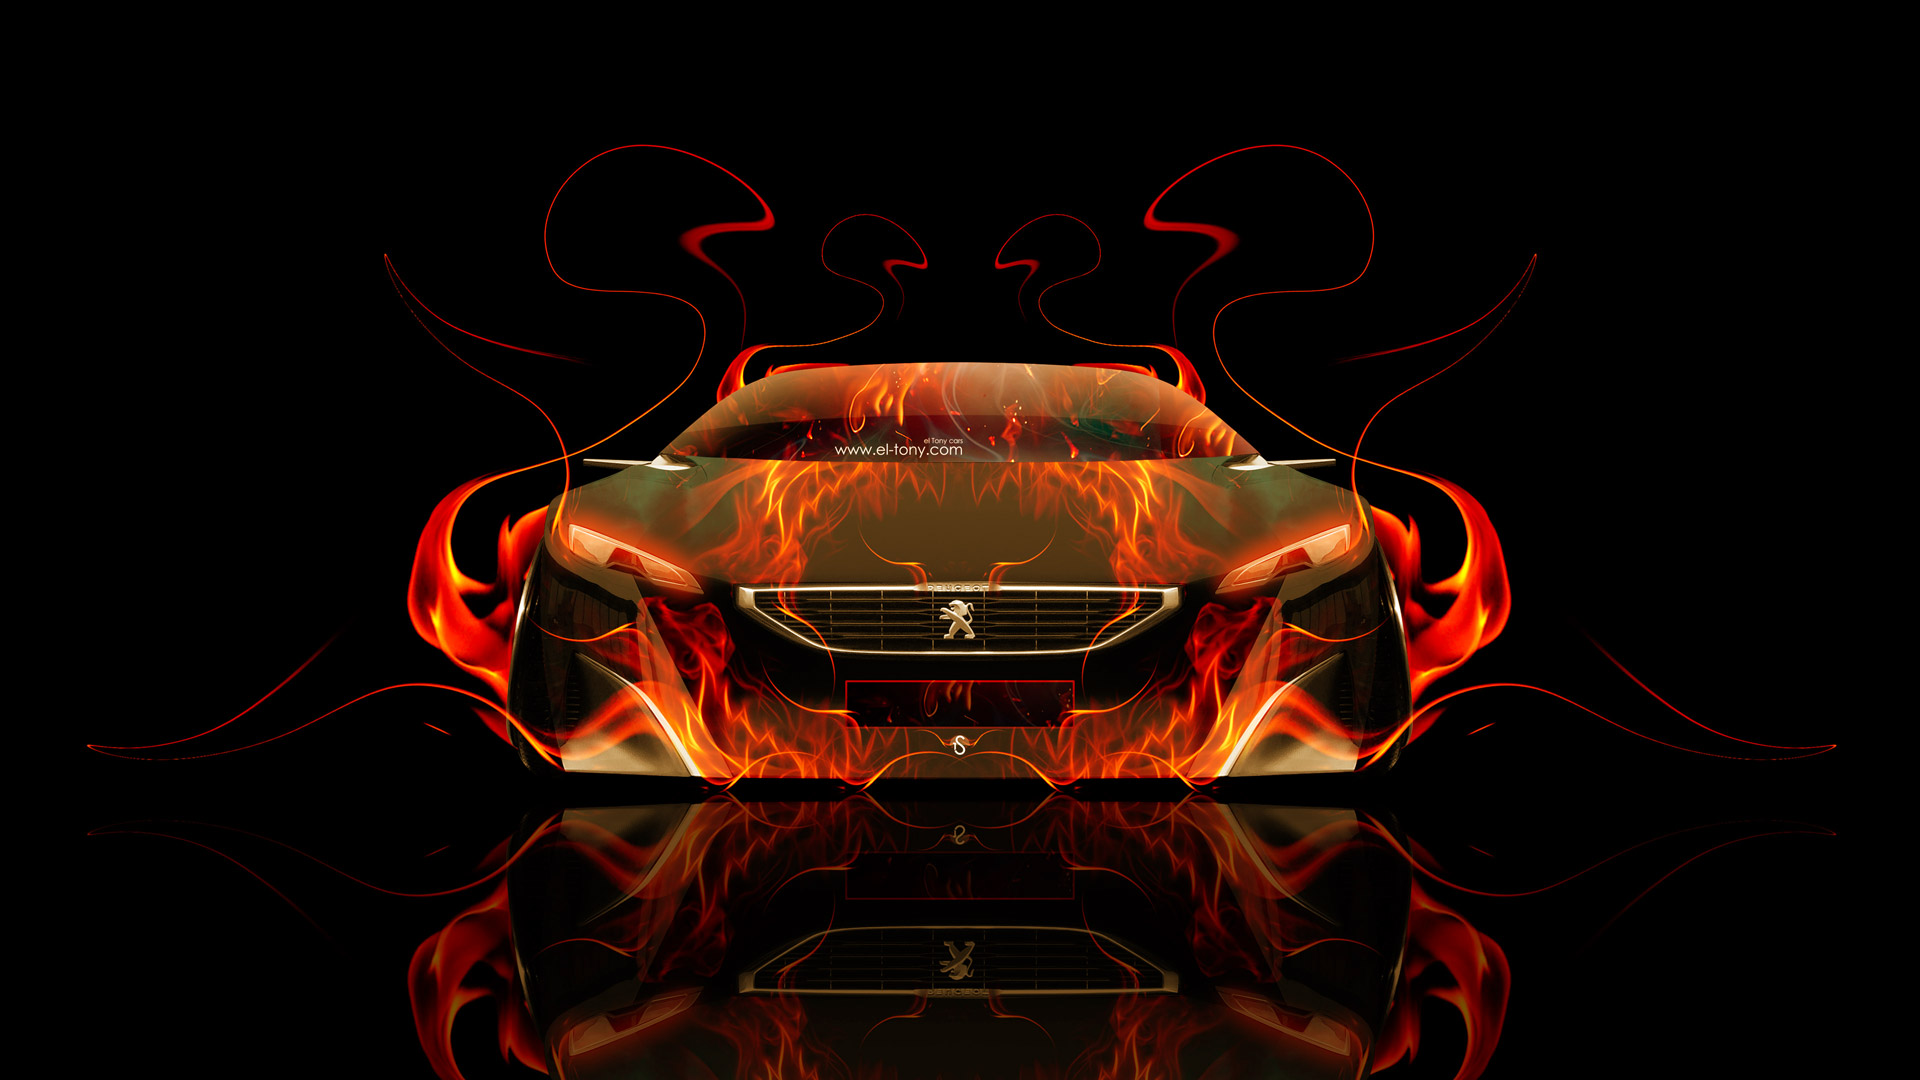 Peugeot-Onyx-Front-Fire-Abstract-Car-2014-HD-Wallpapers-design-by-Tony-Kokhan-[www.el-tony.com]